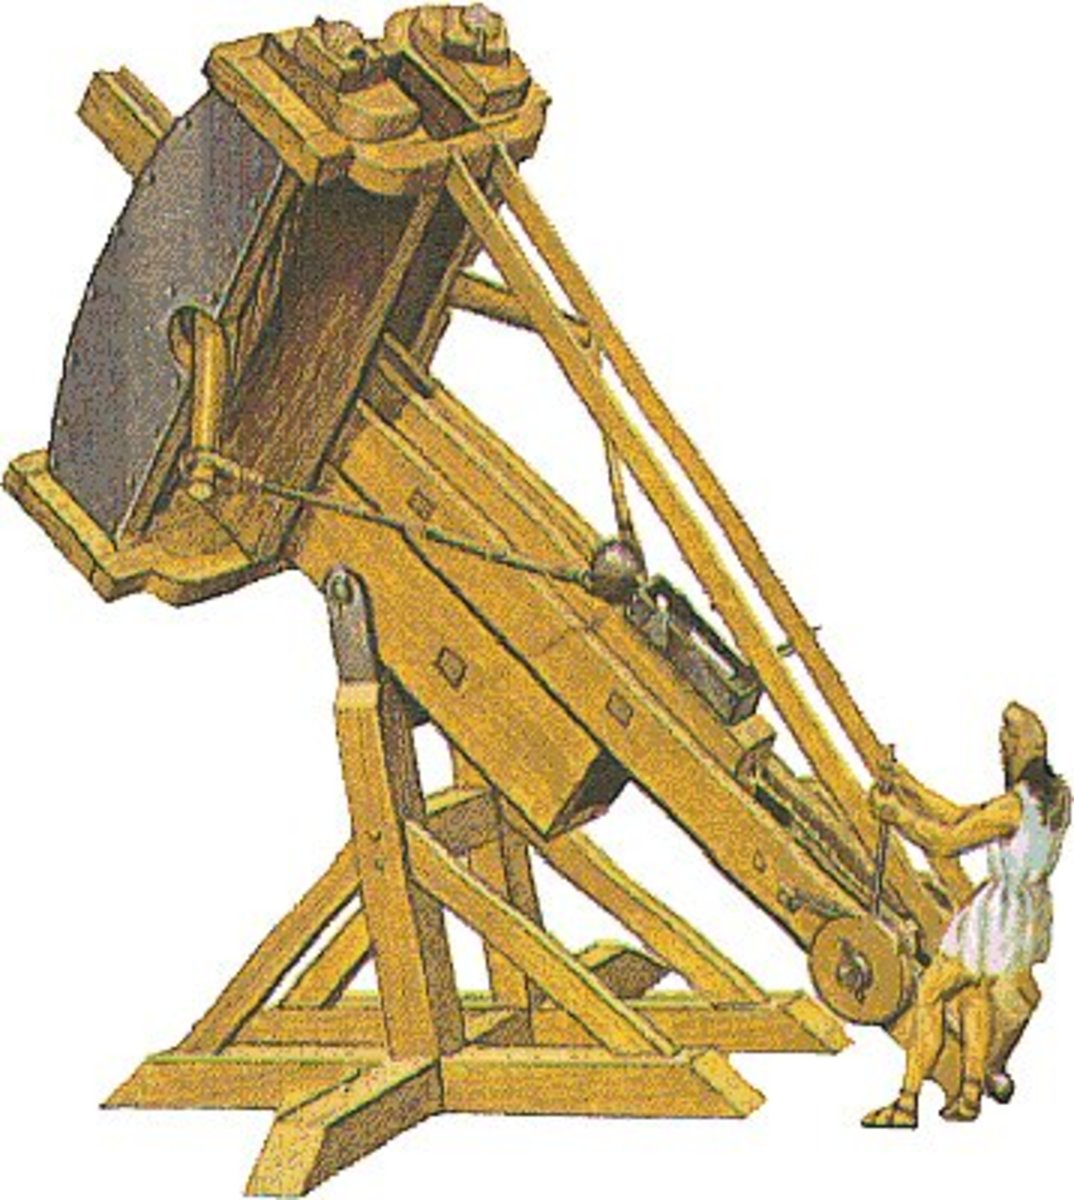 Depiction of the original 'bent bow' catapult